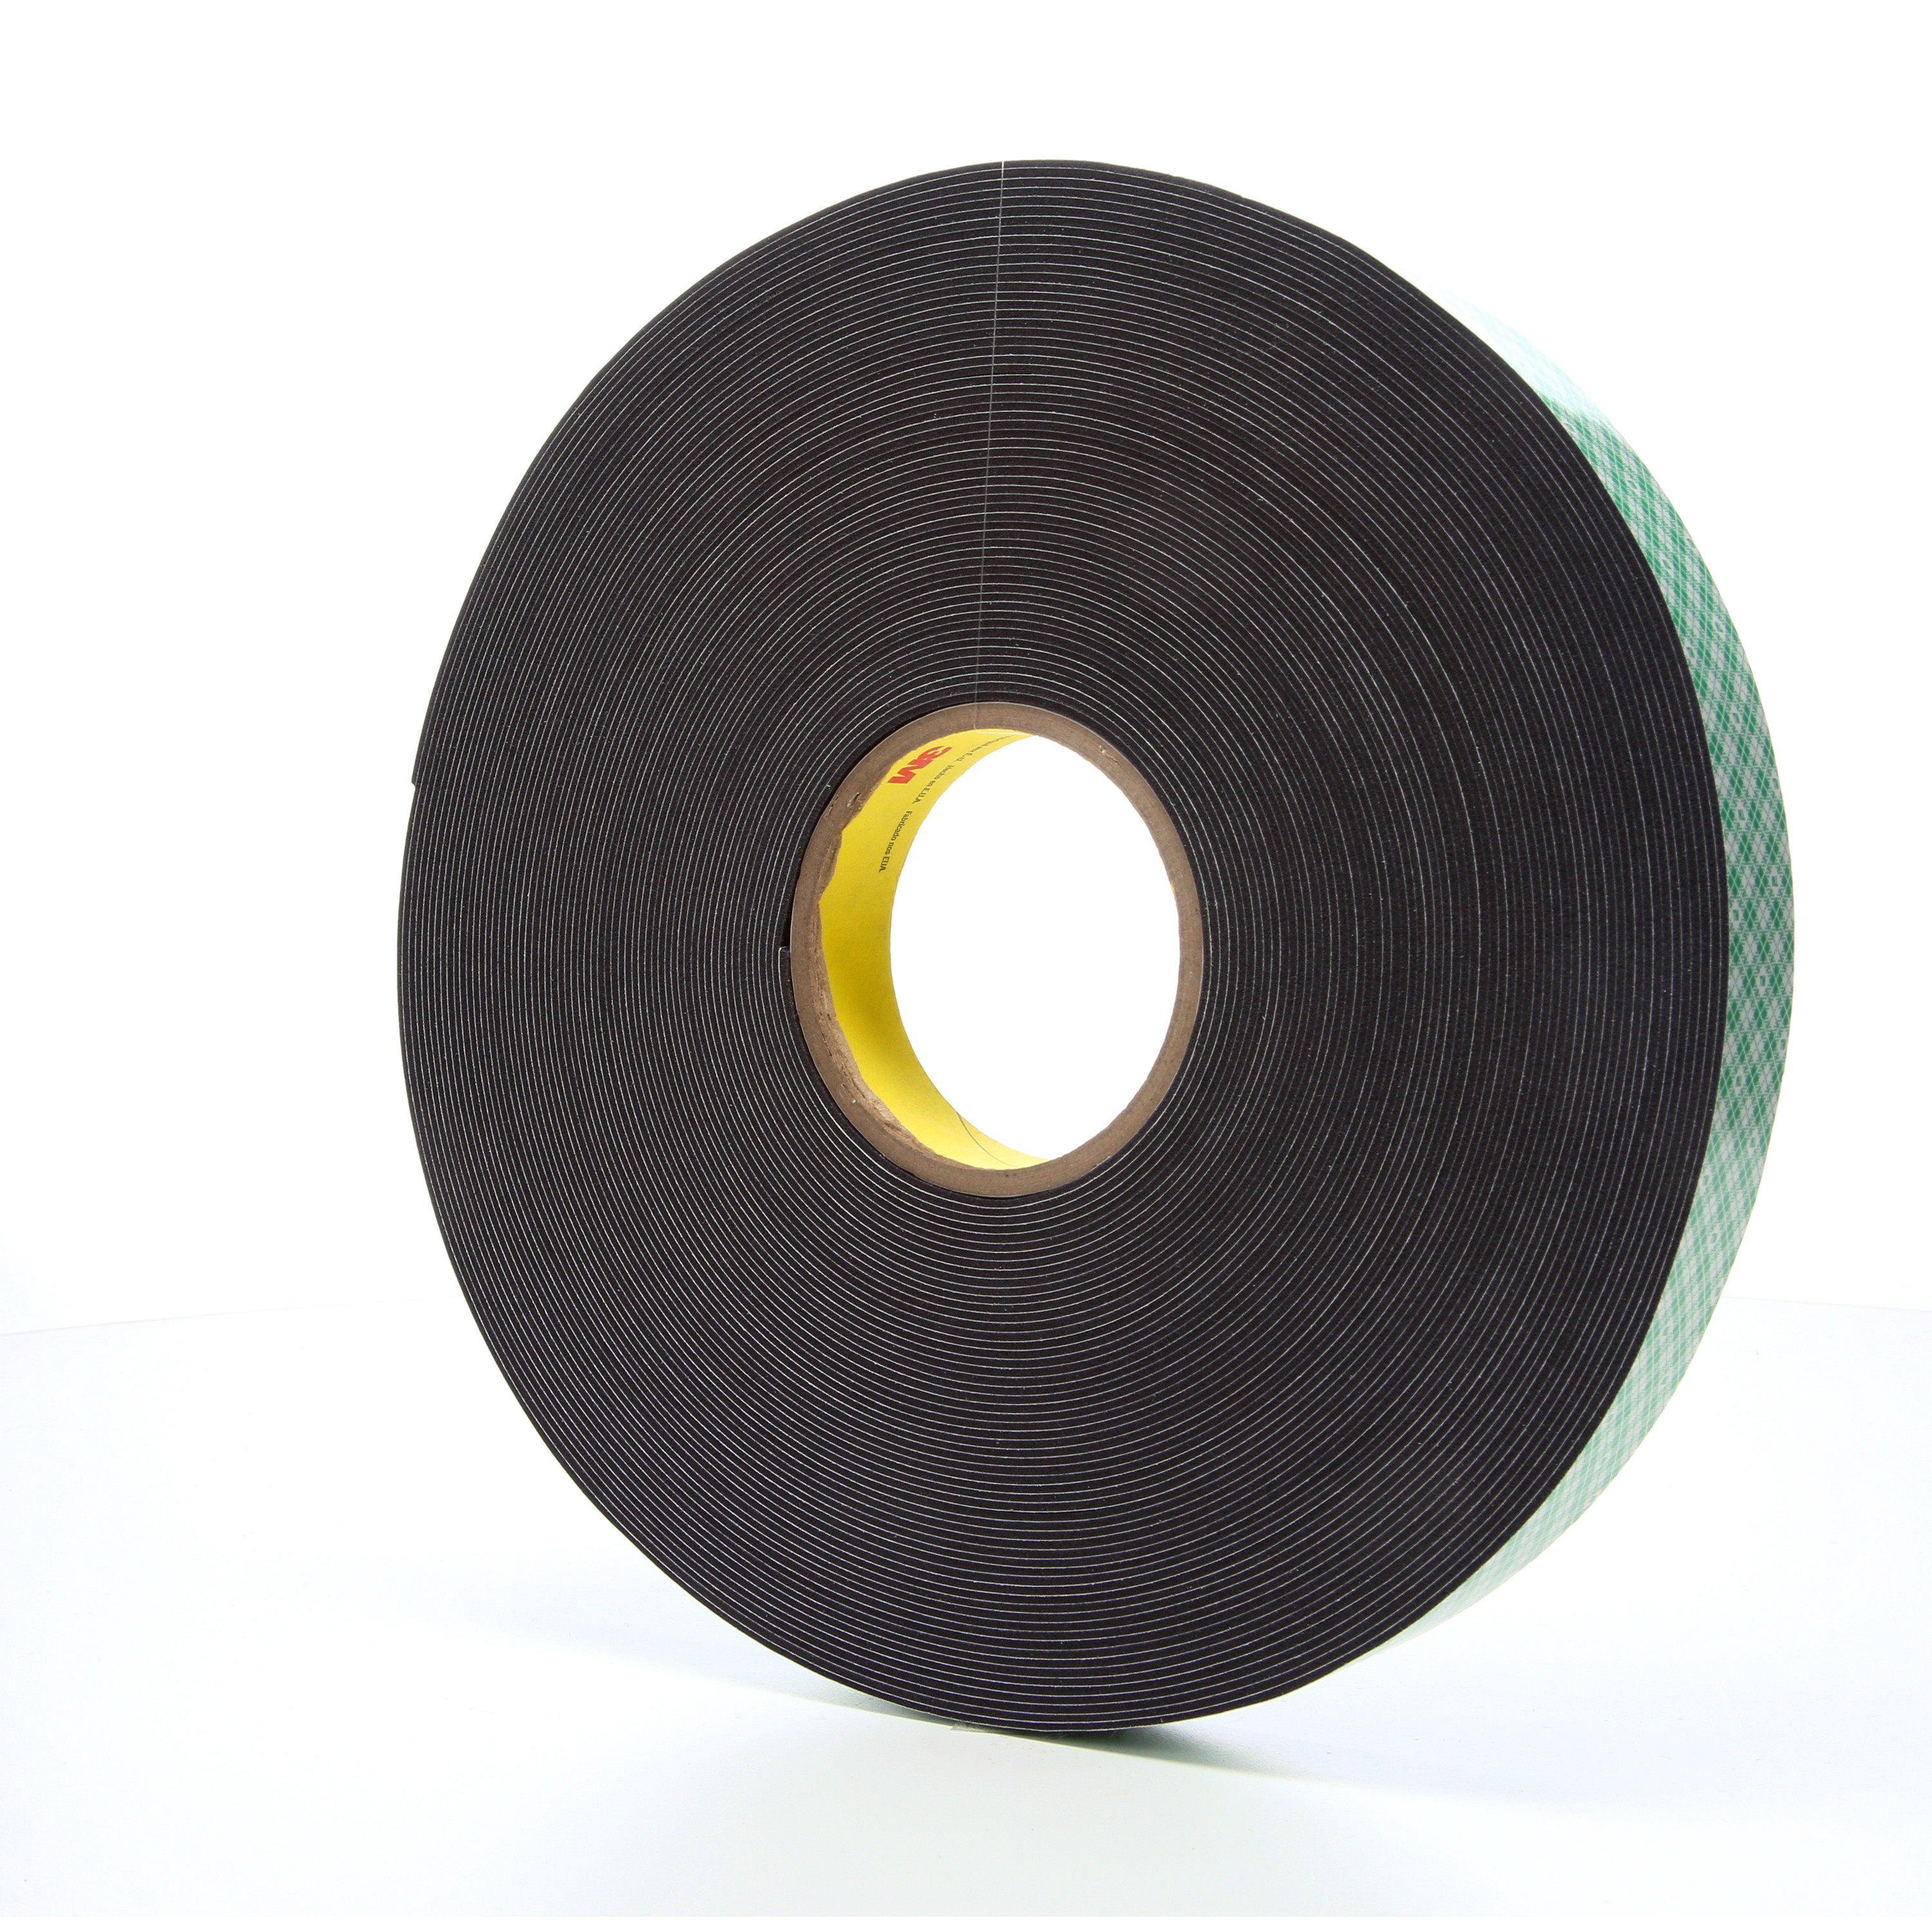 3M™ Double Coated Urethane Foam Tape 4056, Black, 62 mil, Roll, Config